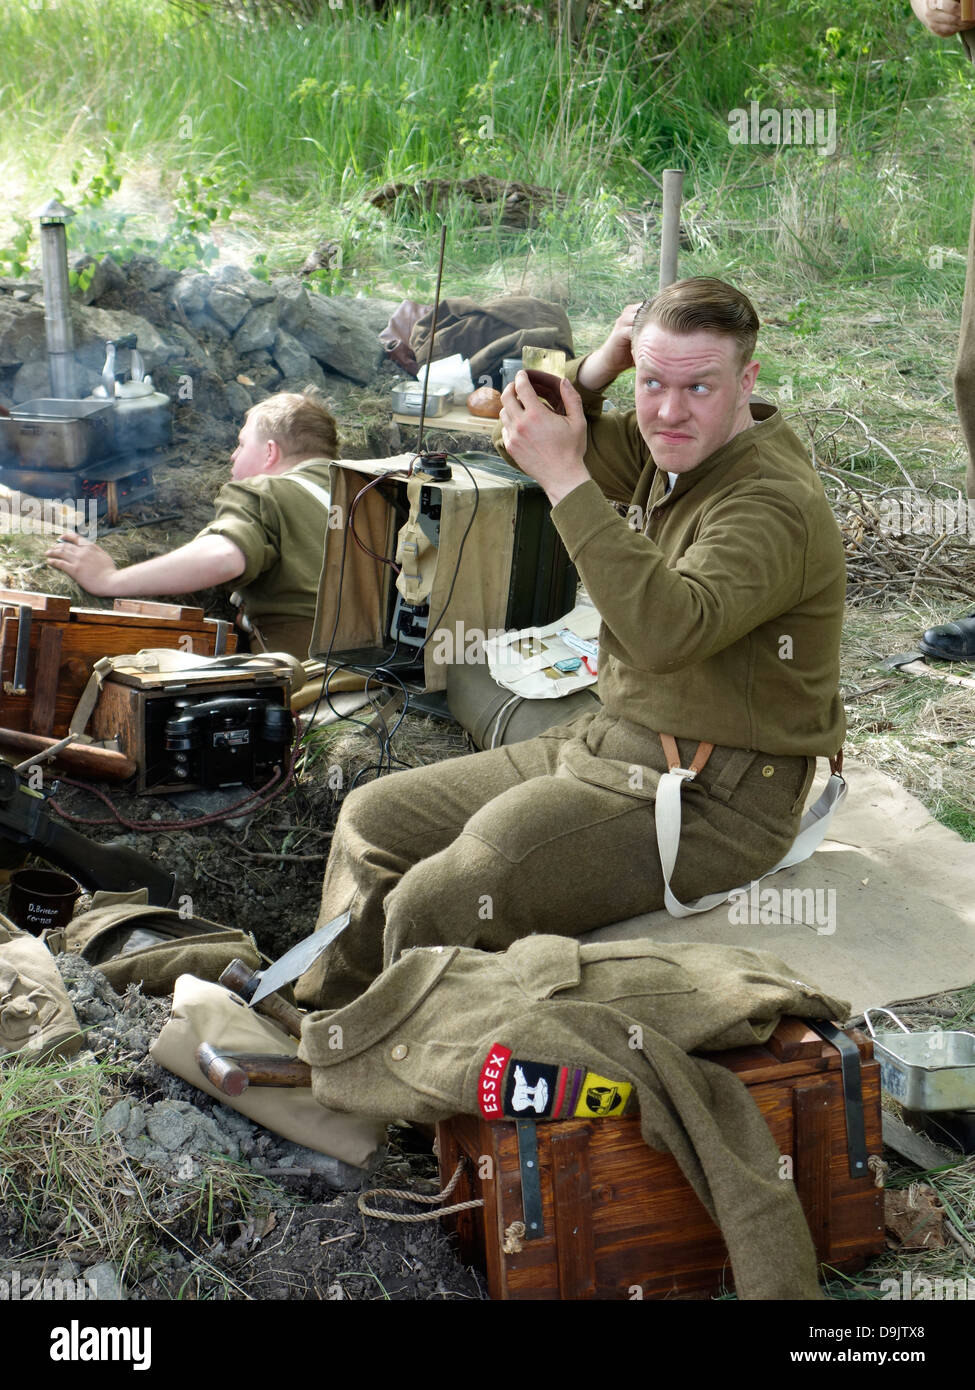 Historical re-enactment of ww2. British soldier in the trench finds time to comb his hair. - Stock Image